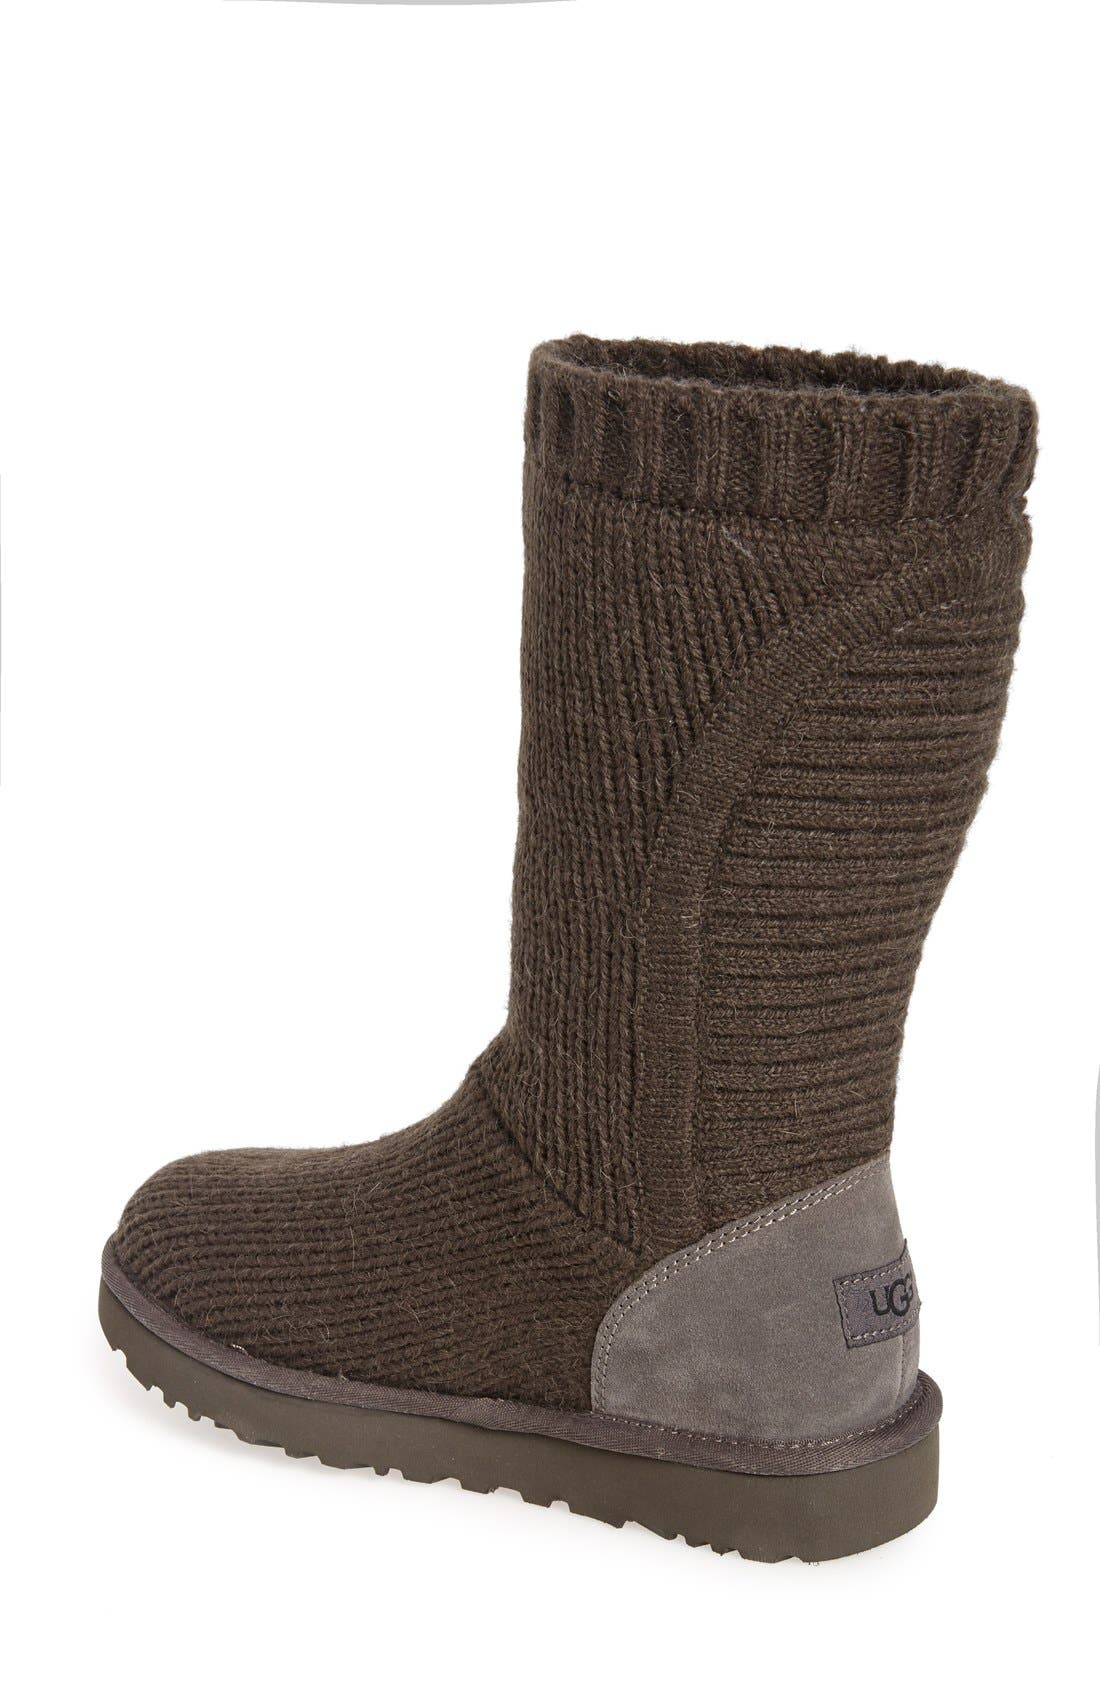 'Capra' Ribbed Knit Genuine Shearling Lined Boot,                             Alternate thumbnail 2, color,                             Grey Fabric